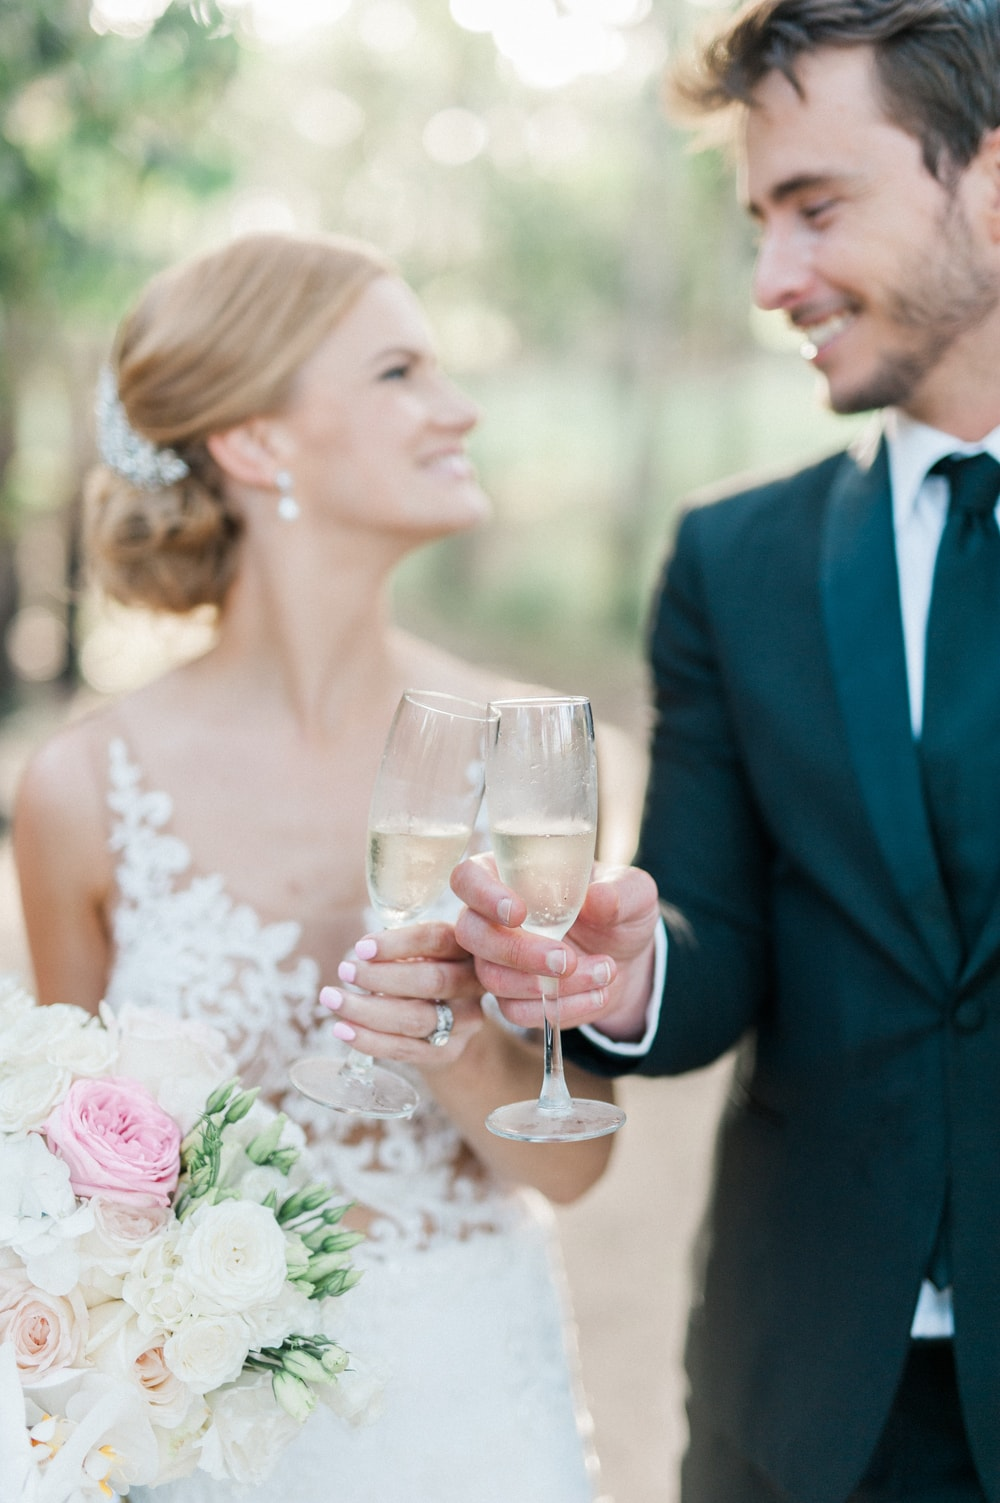 Bride & Groom Champagne Toast | Image: Bright Girl Photography